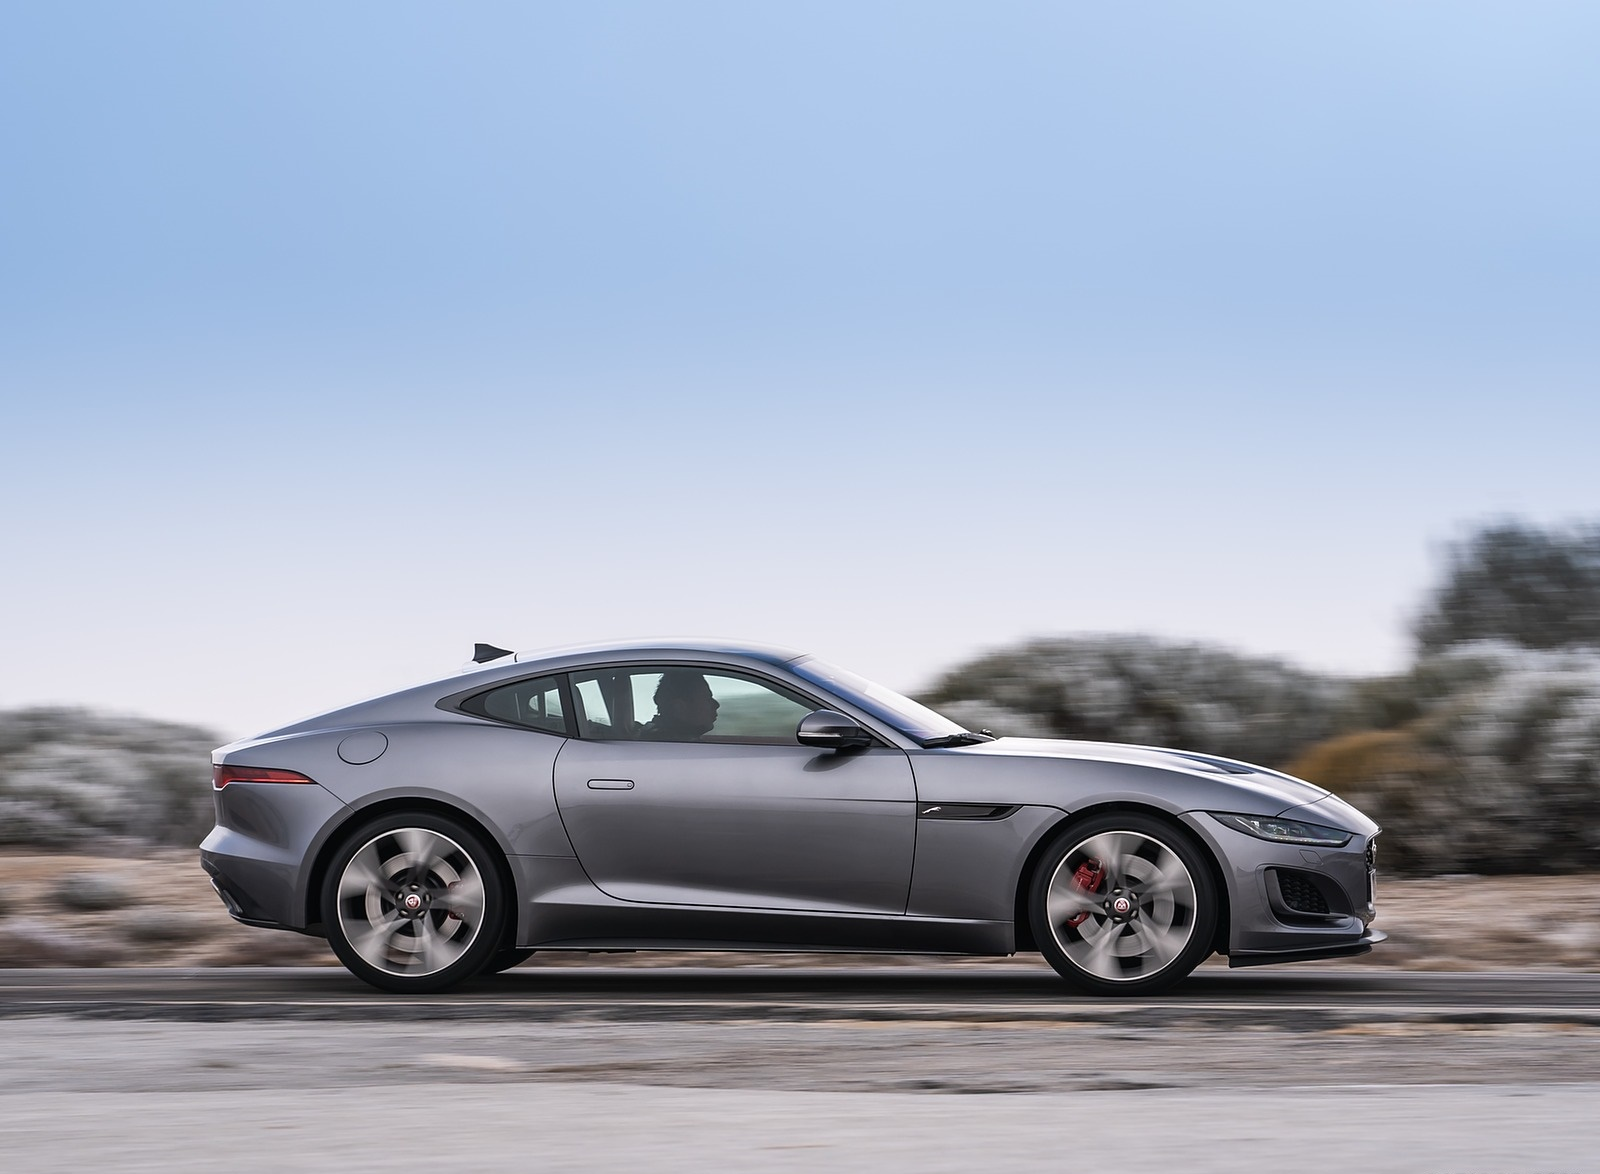 2021 Jaguar F-TYPE P300 Coupe RWD (Color: Eiger Grey) Side Wallpapers (10)